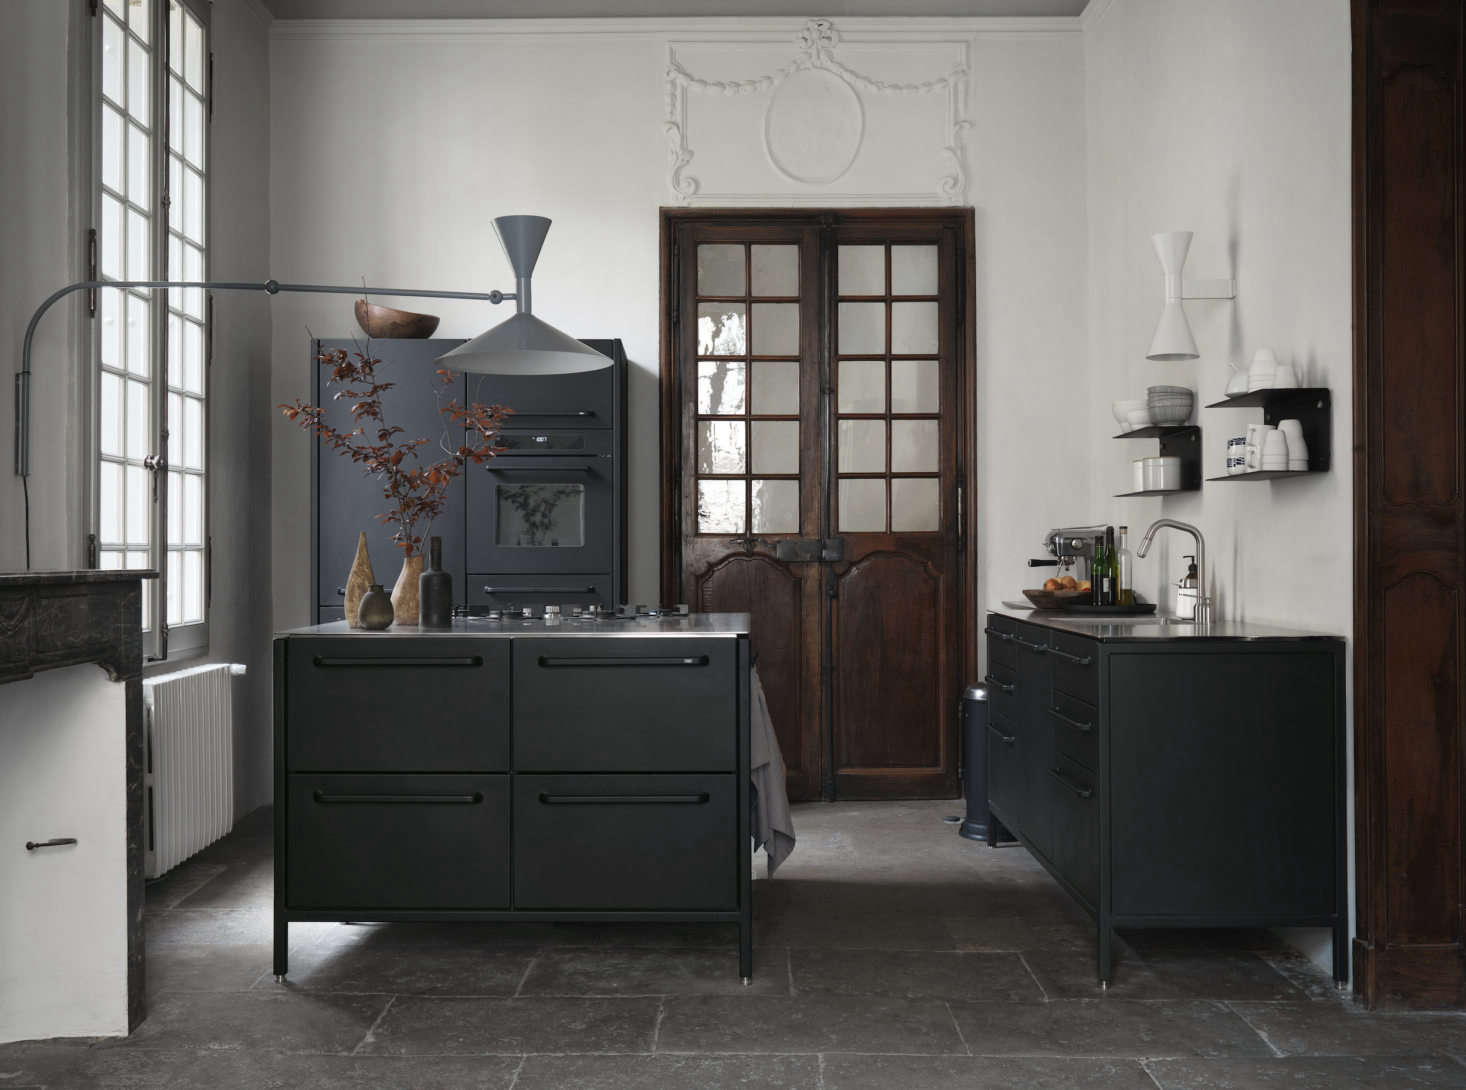 Three Vipp modules make up the kitchen. The legs can be adjusted, a useful feature when you&#8